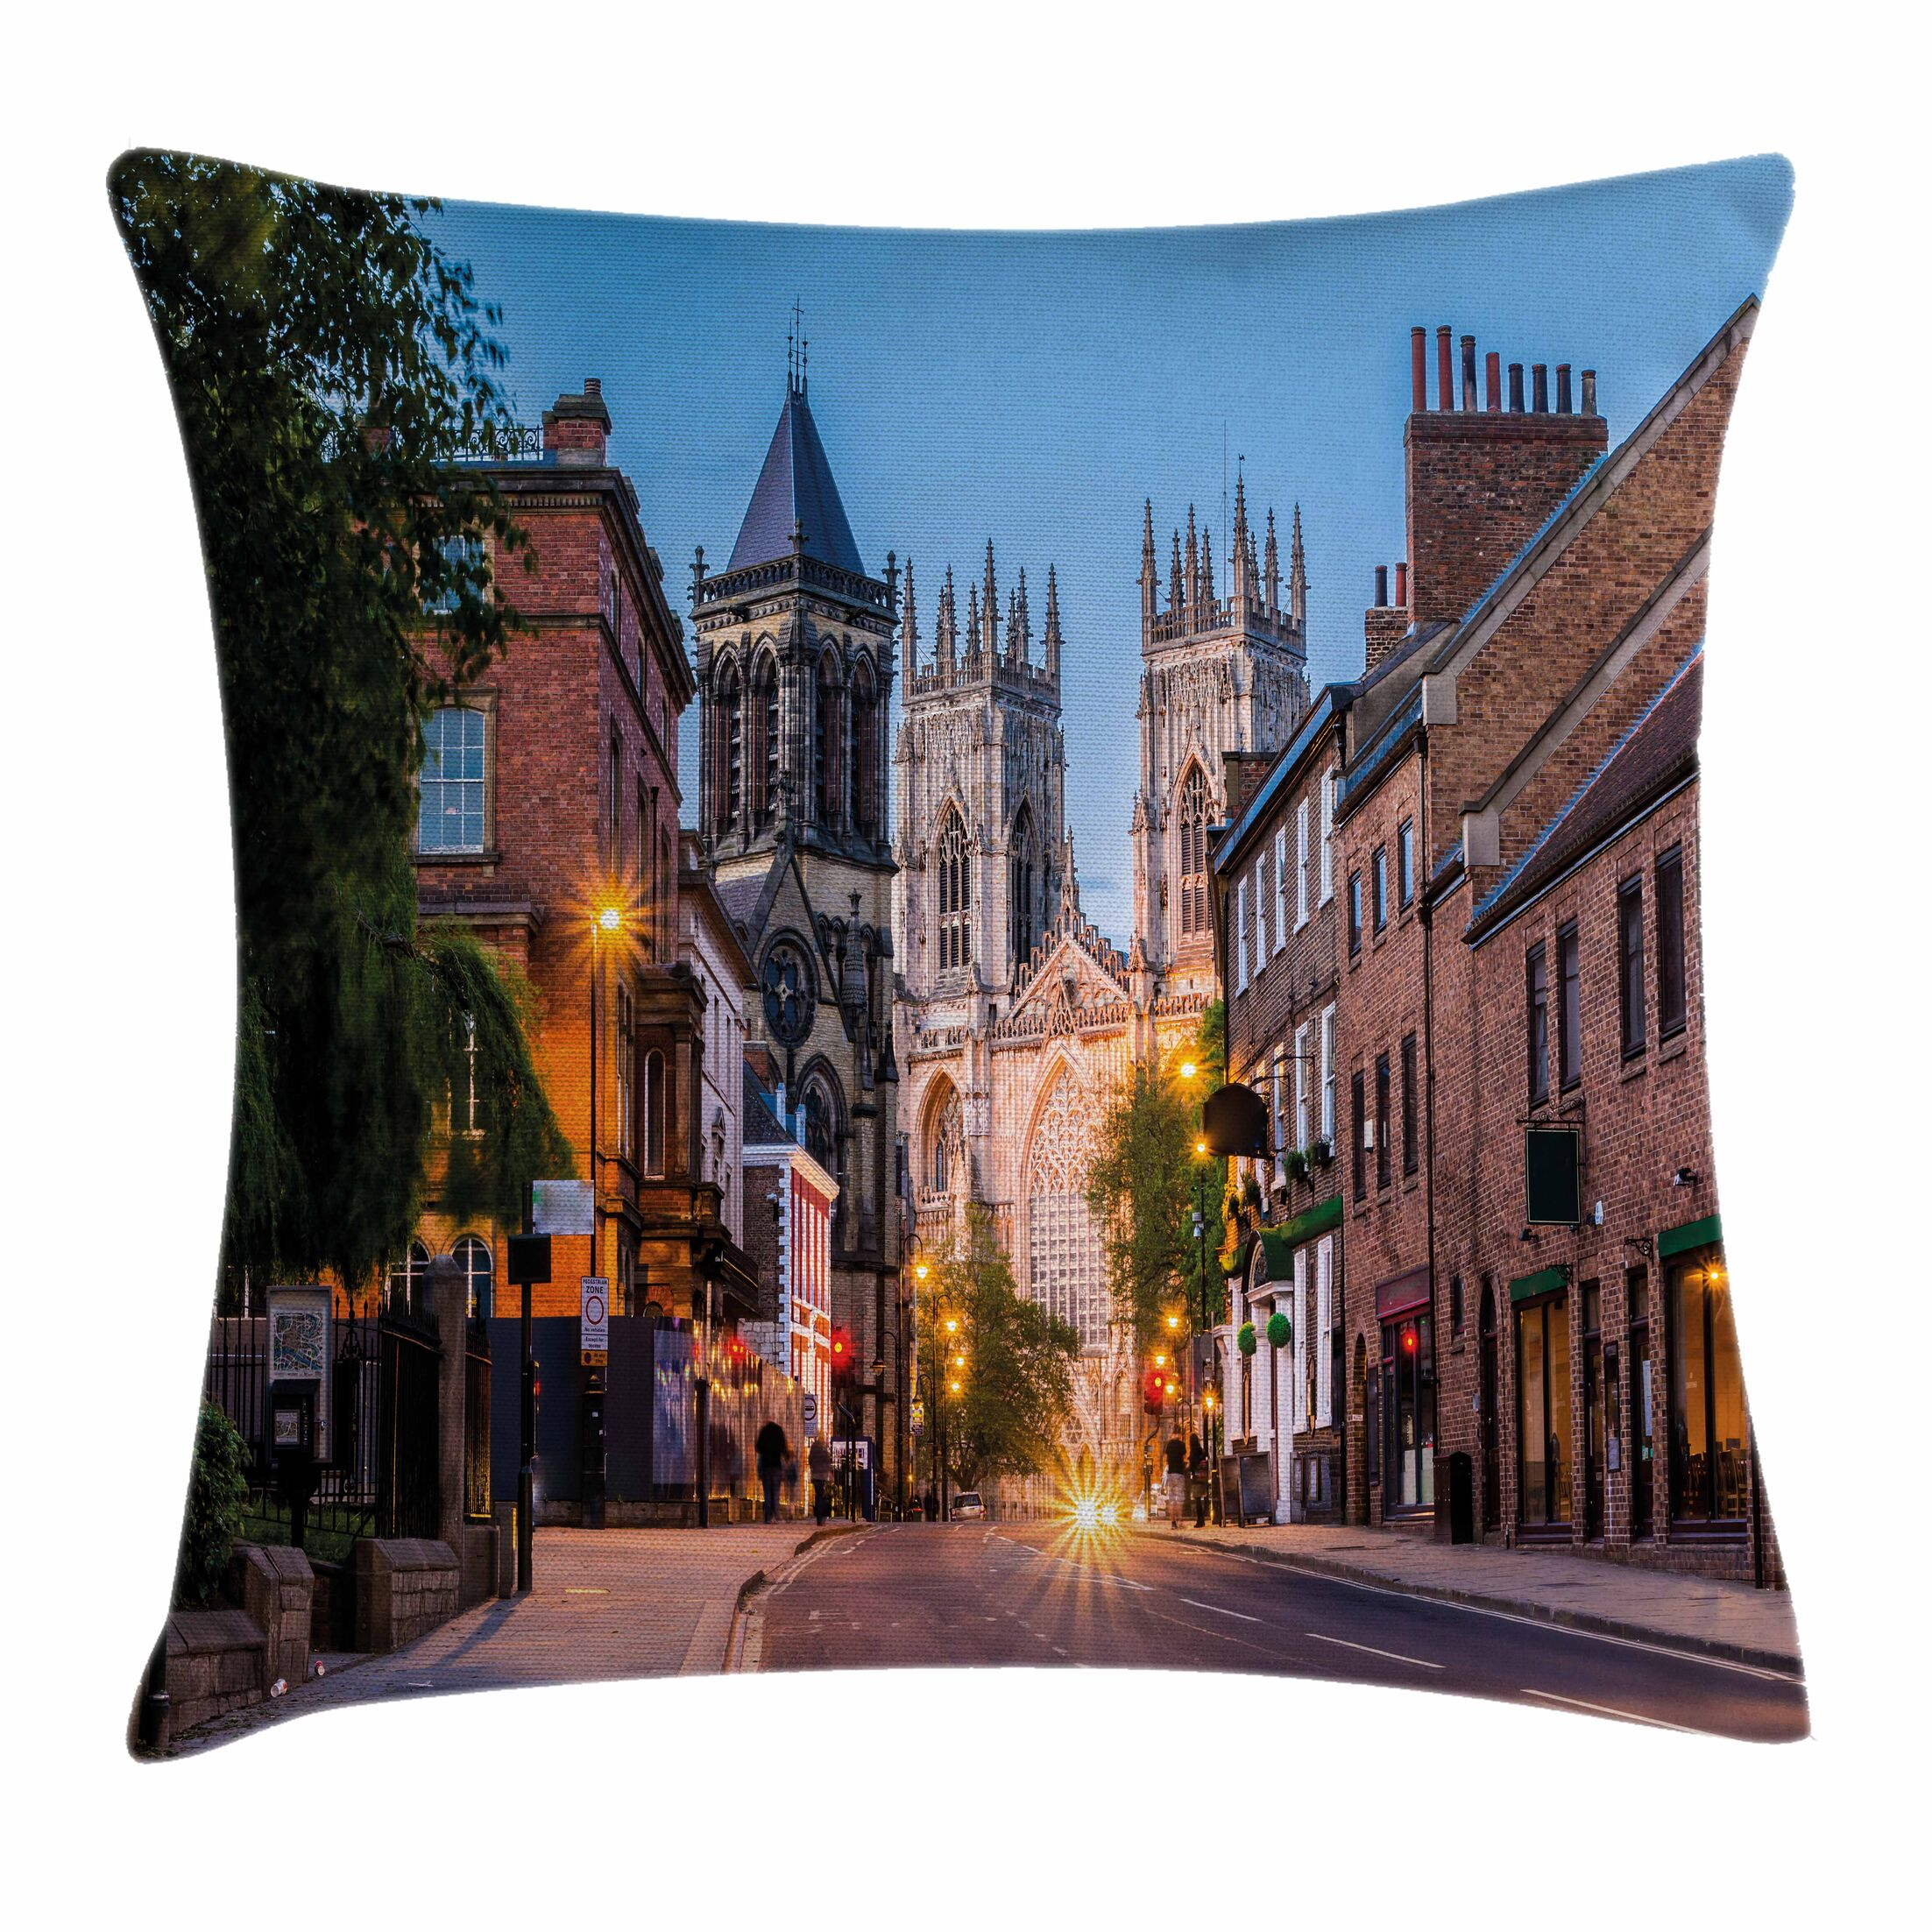 Gothic Decor York Minster View Square Pillow Cover Size: 20